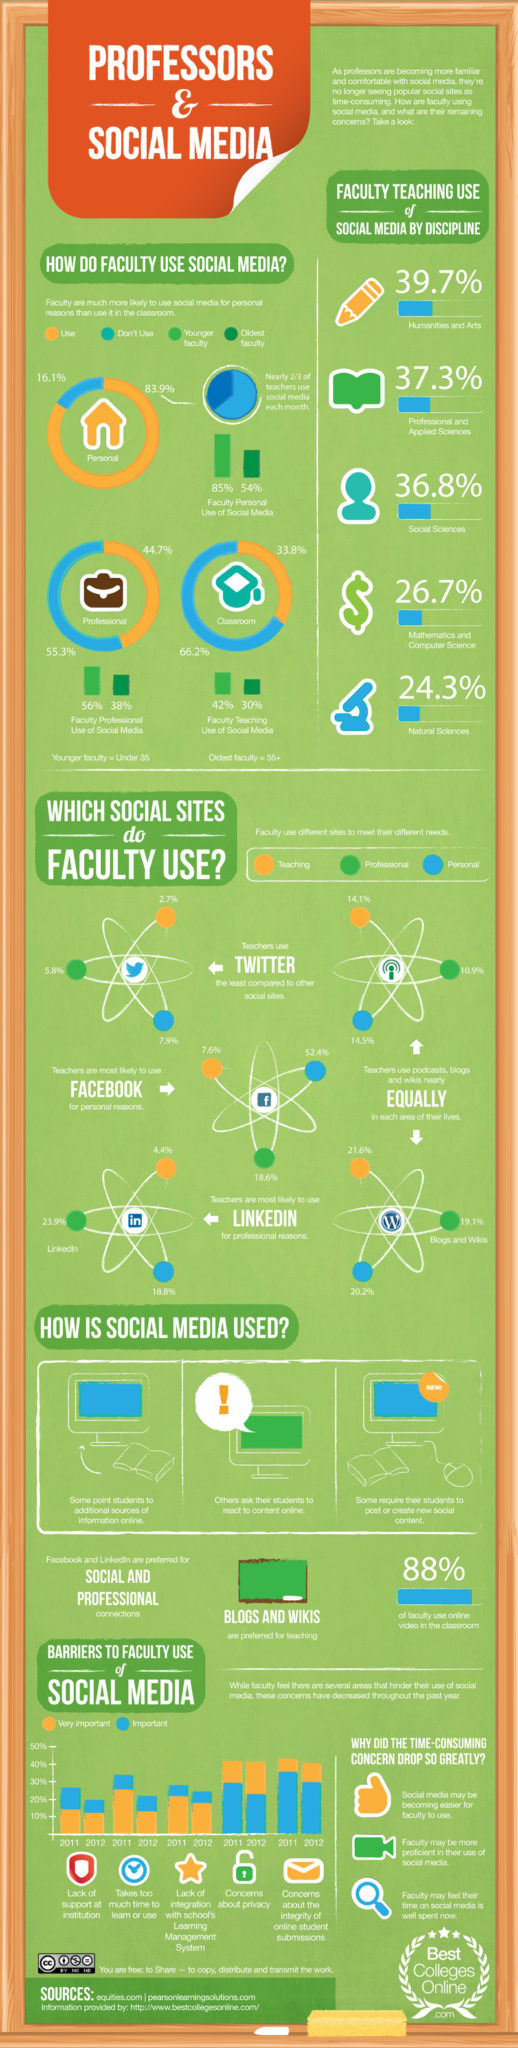 Professors and Social Media